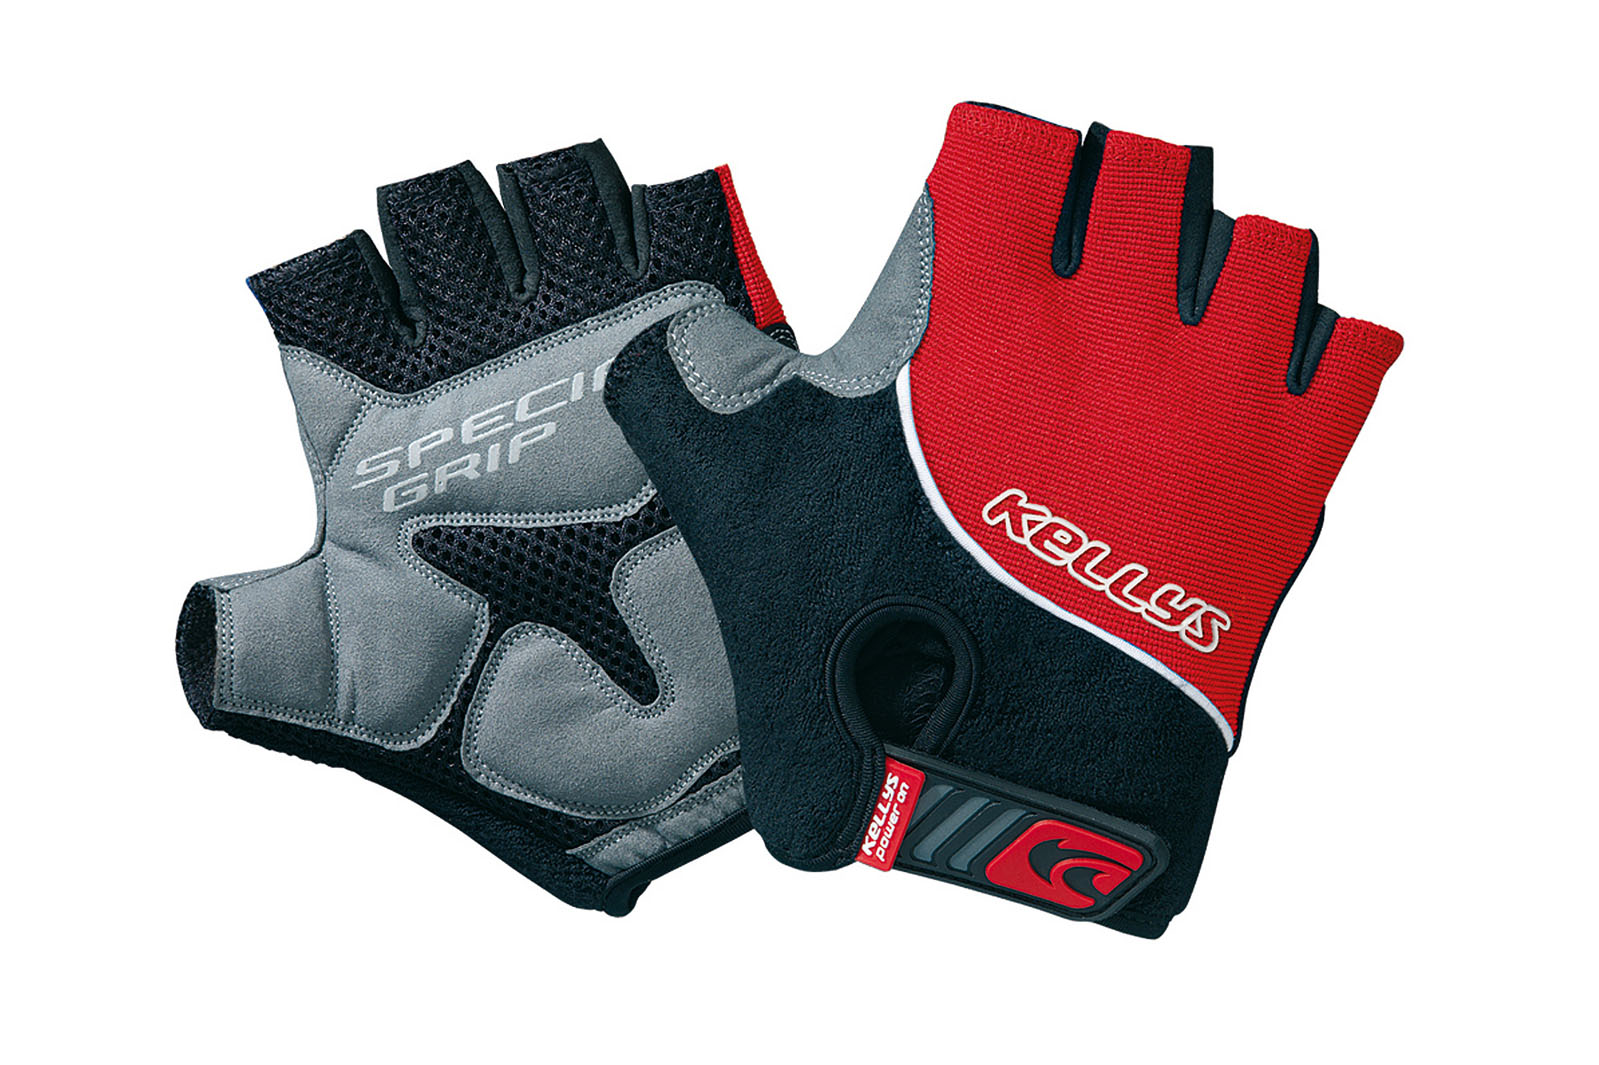 Handschuhe RACE red S - Mile-Multisport